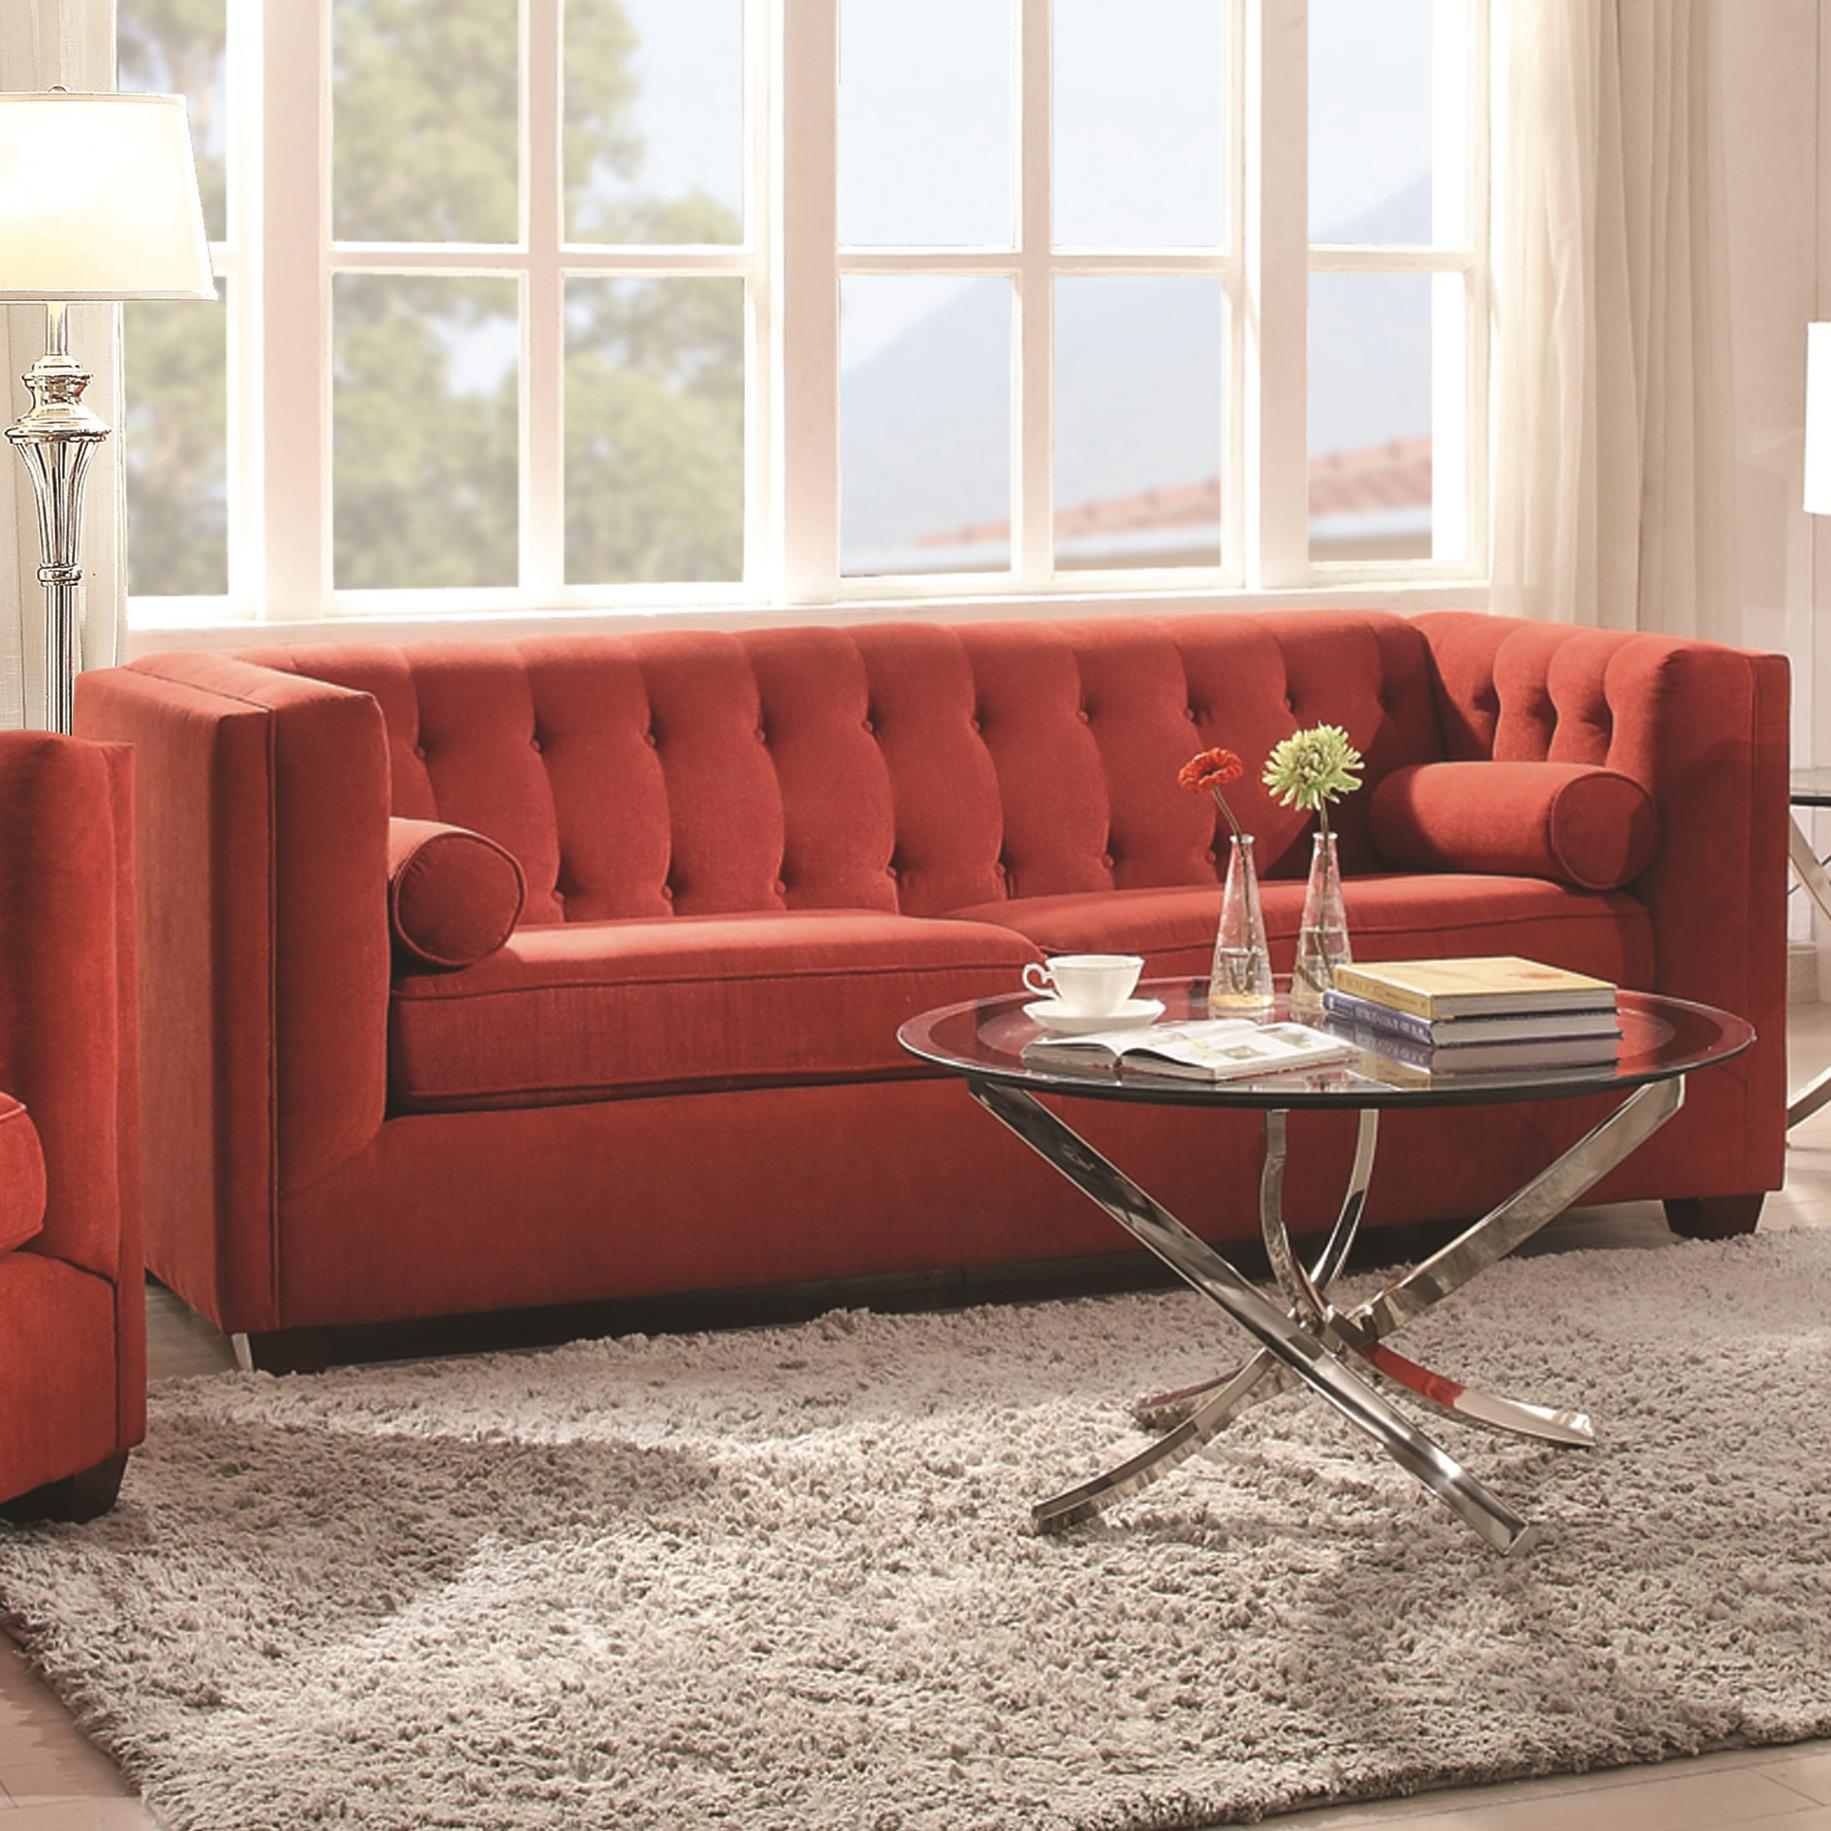 Cairns Stationary Sofa With Tufted Back And Lumbar Pillows 504907 3 Colors Silver State